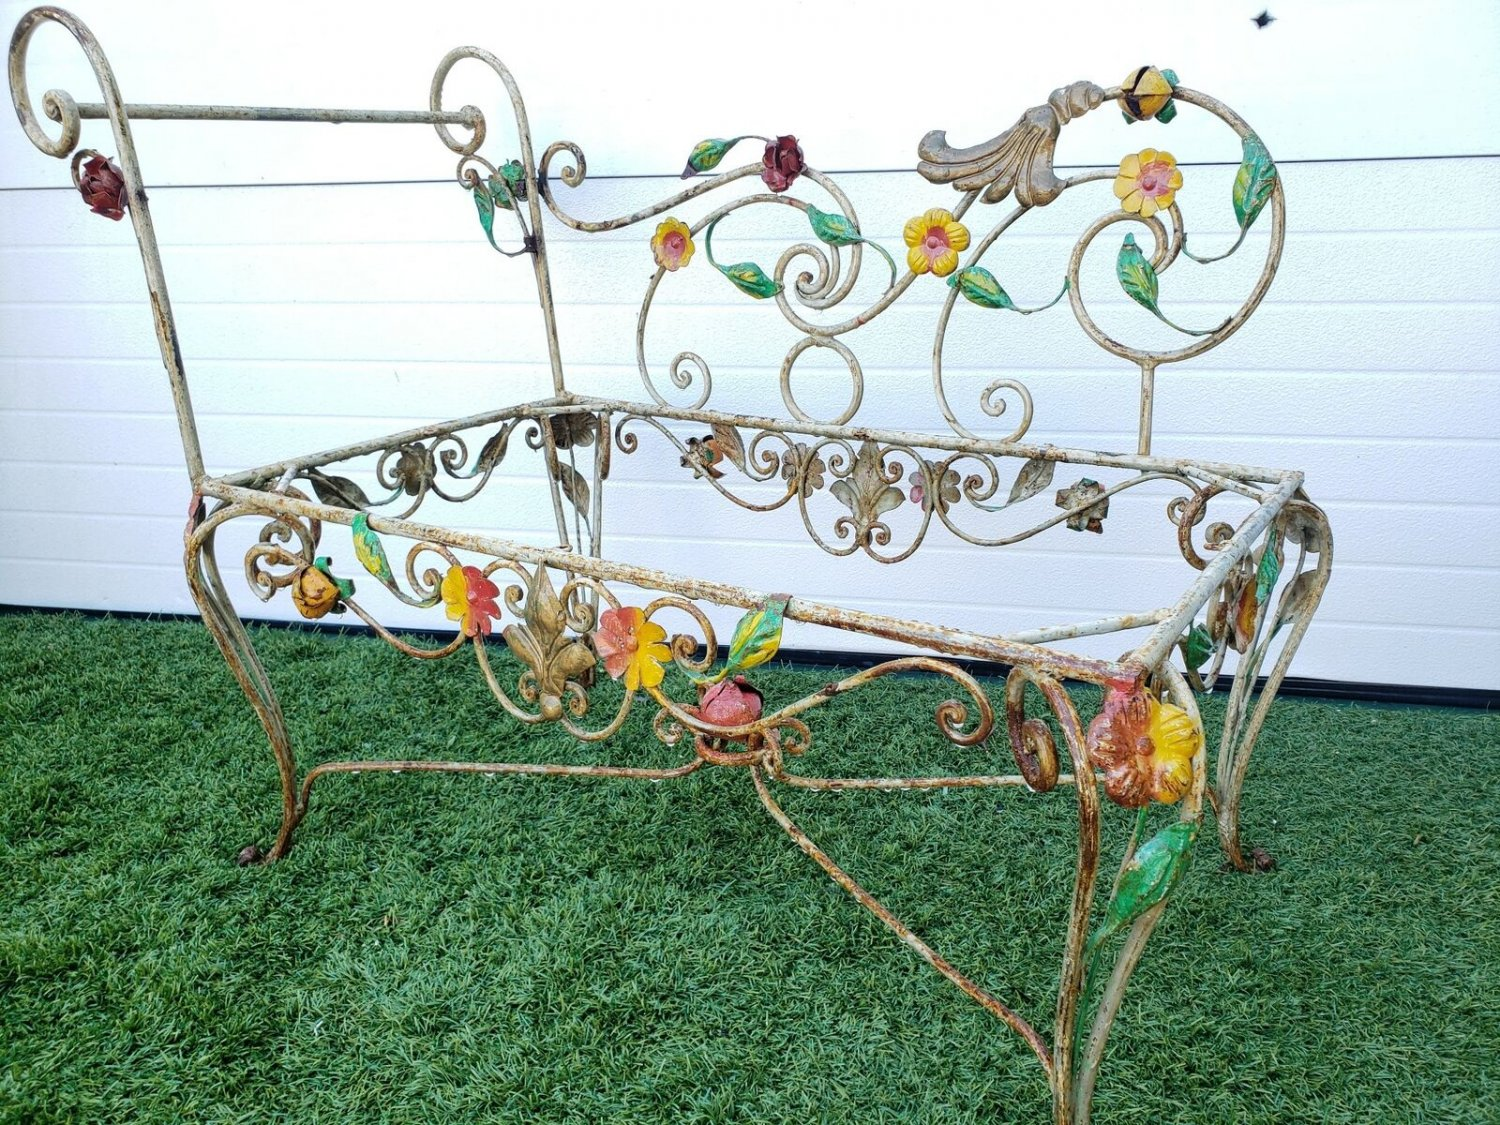 Whimsical French Antique Turn Of The Century Wrought Iron Petite Bench, Small Ch